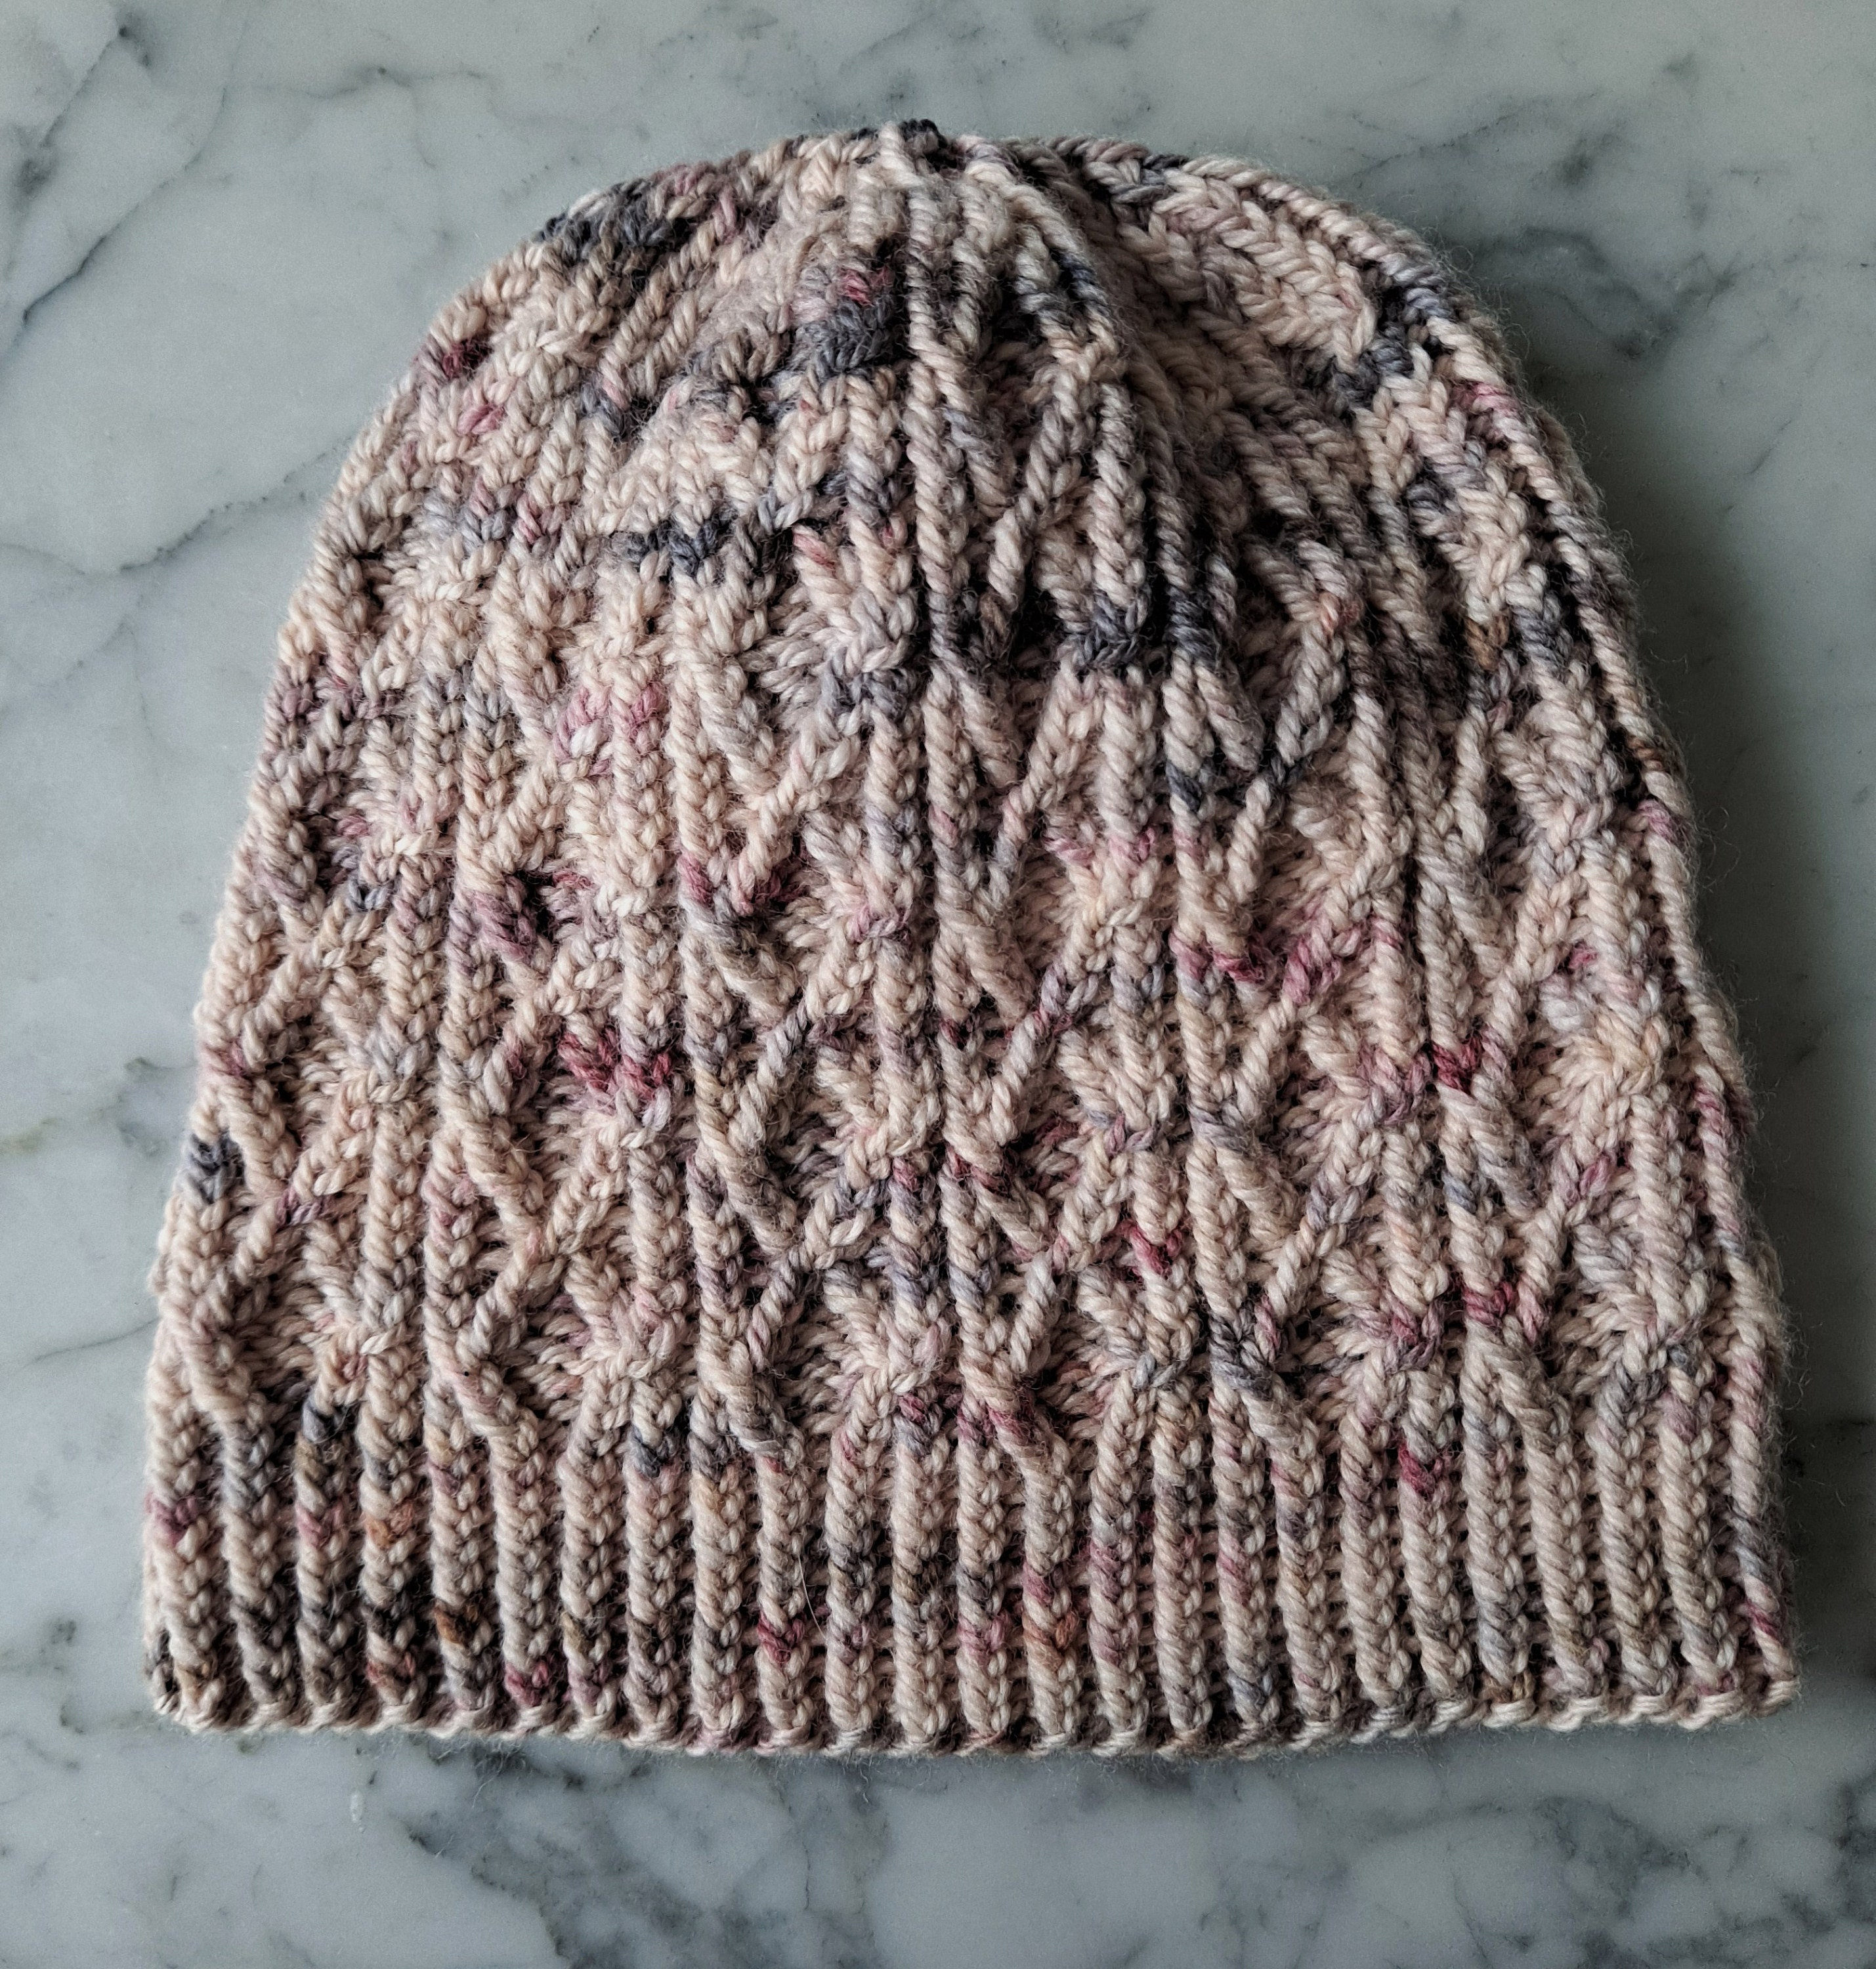 A pale pink cabled knitted hat lies flat on a marble background.